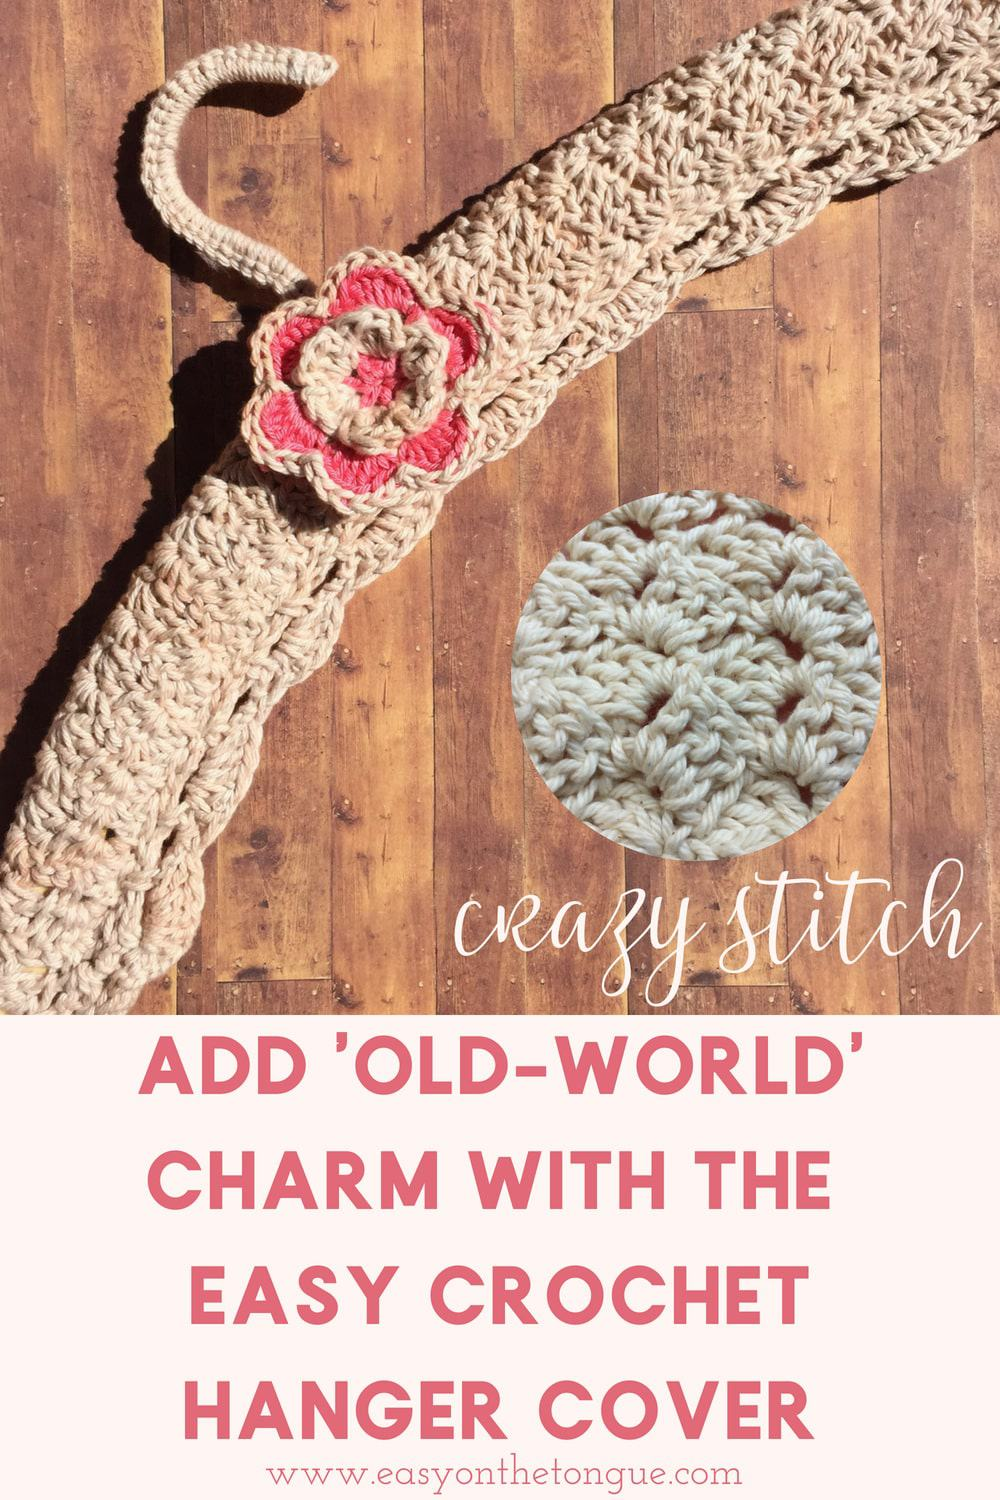 How To Add Old World Charm With This Easy Crochet Hanger Cover